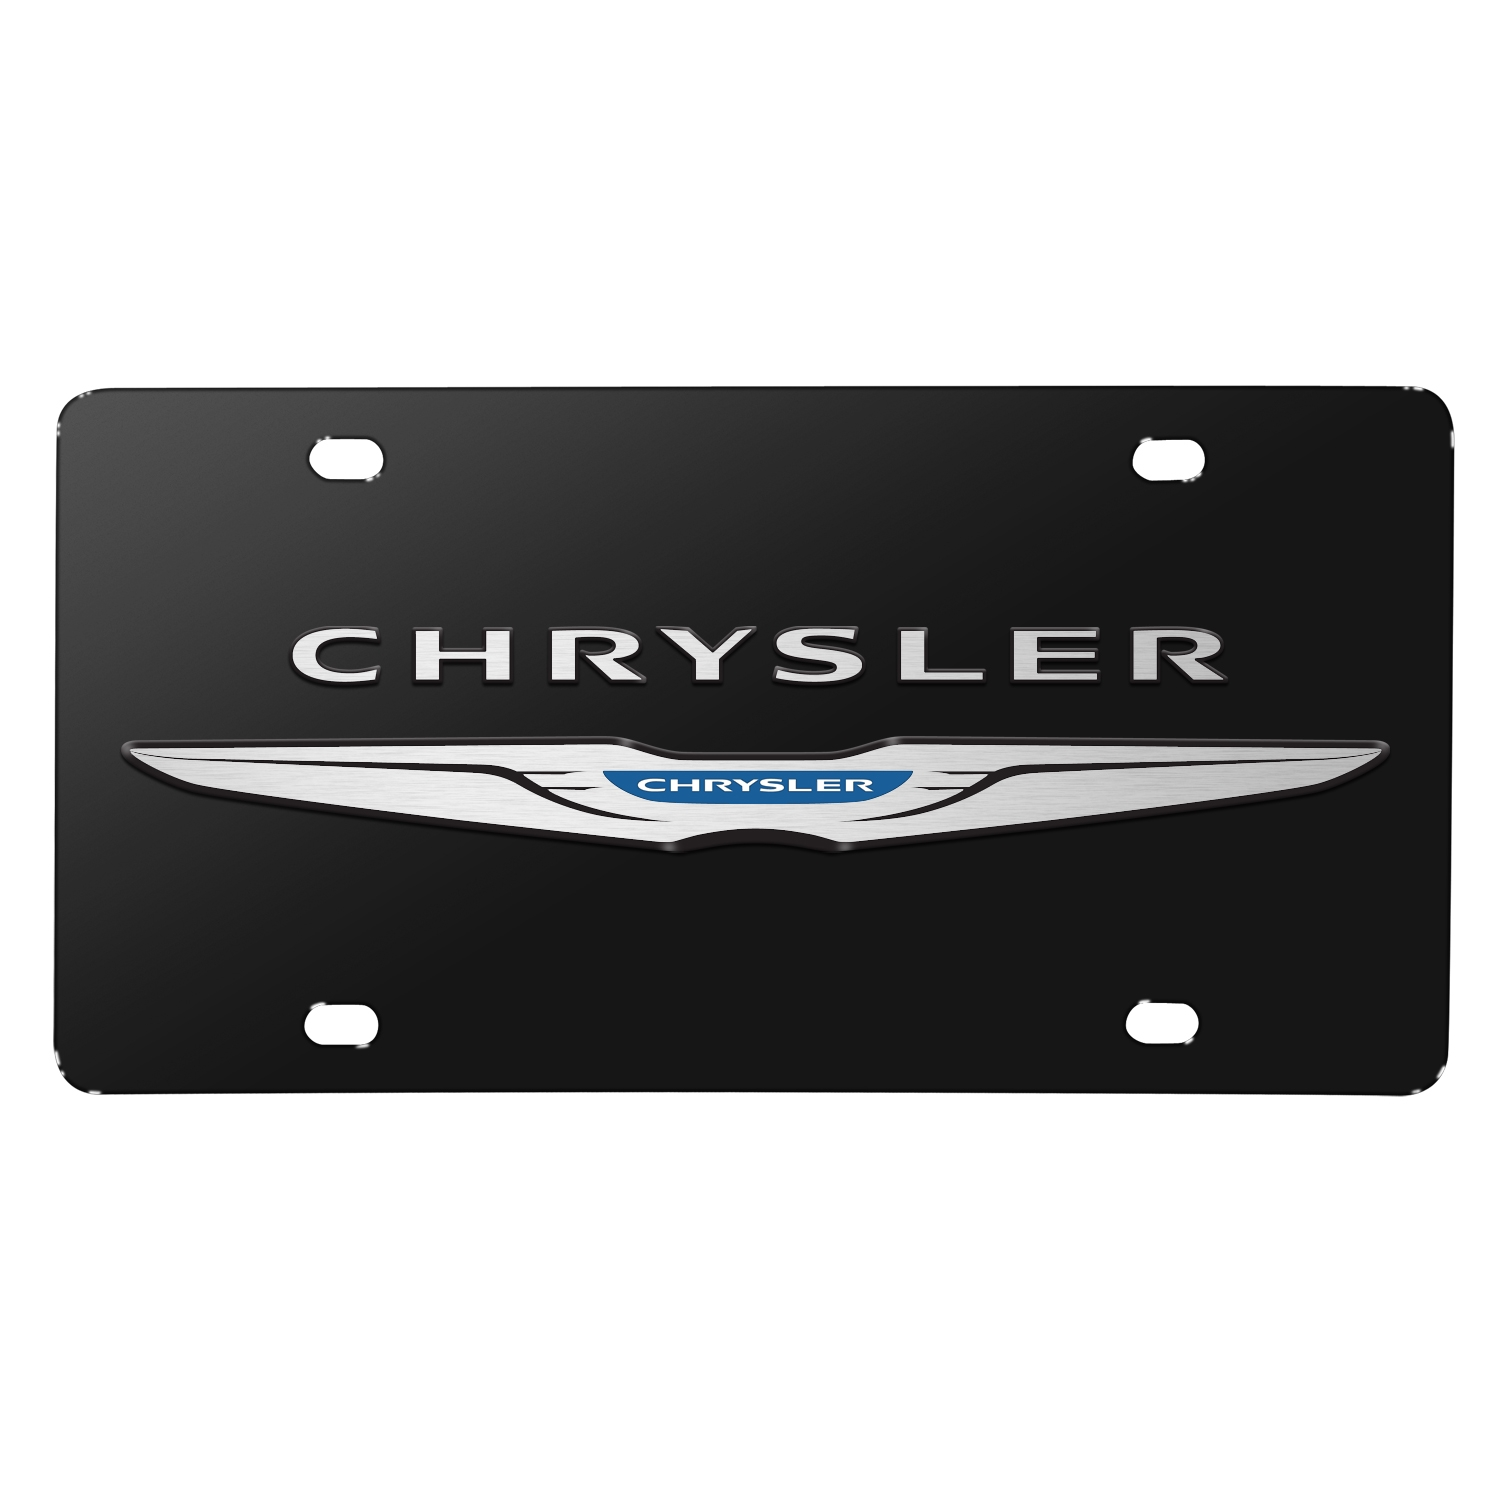 Chrysler Wings Double 3D Logo Black Stainless Steel License Plate